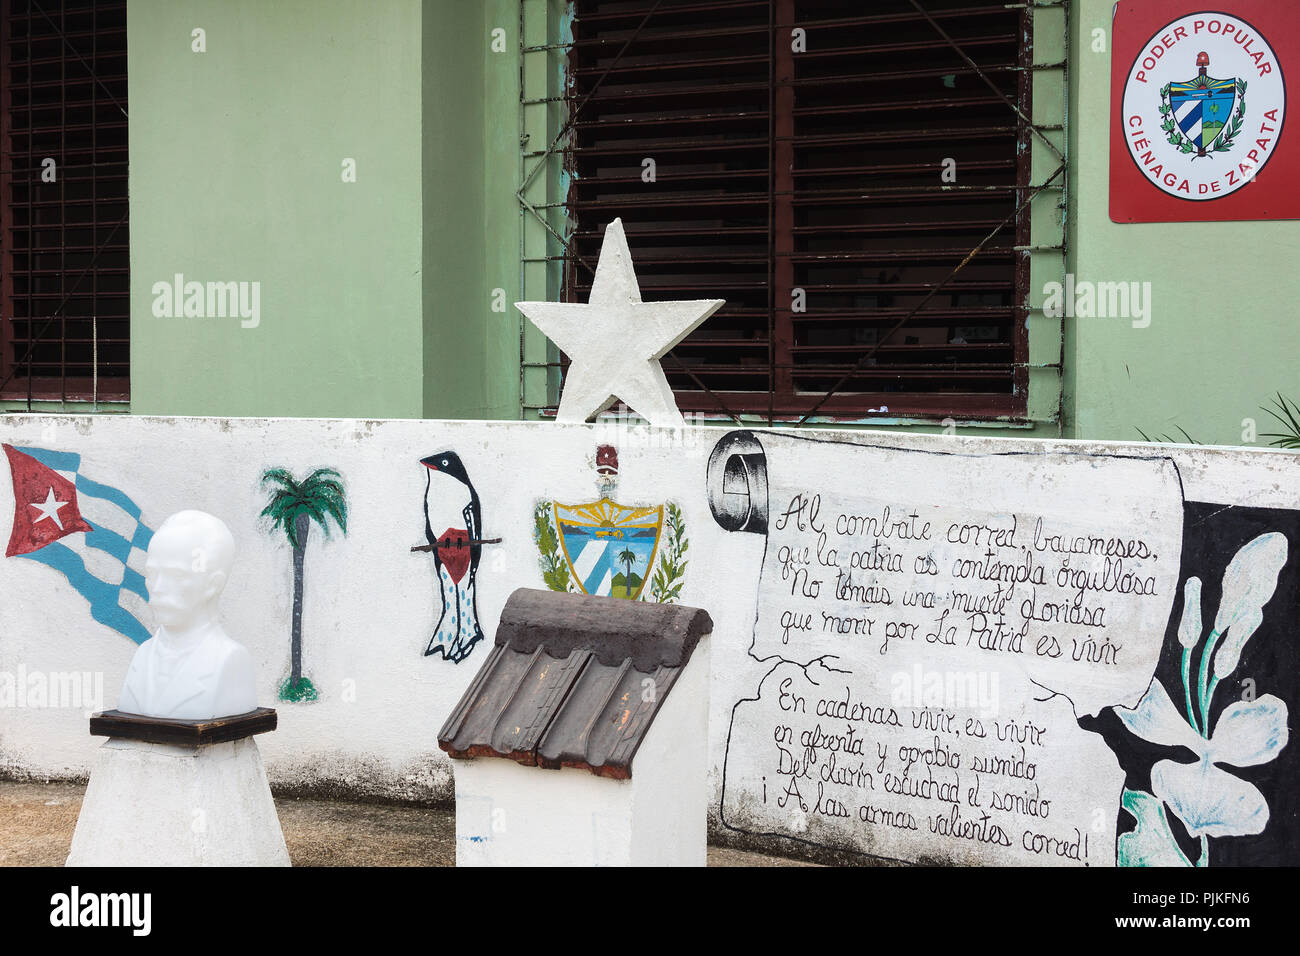 Cuba, Bay of Pigs / Bahía de Cochinos Playa Larga, propaganda - Stock Image